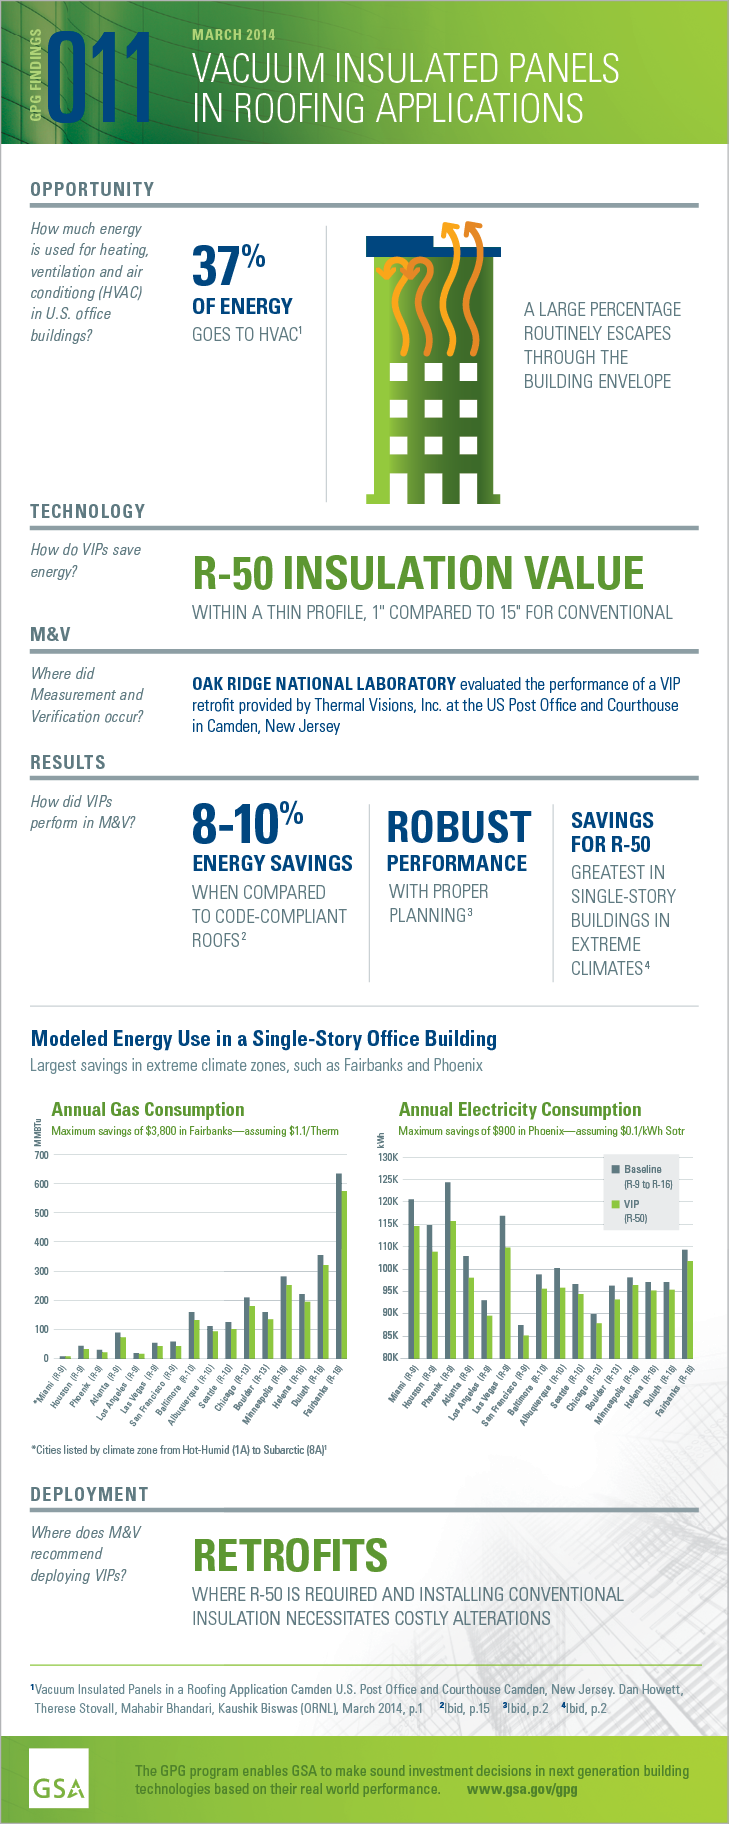 "GPG Findings 11, Vacuum Insulated Panels In Roofing Applications. Opportunity: How much energy is used for heating, ventilation and air conditioning (HVAC) in U.S. office buildings? 37% of energy goes to HVAC. A large percentage routinely escapes through the building envelope. Technology: How do VIPs save energy? R-50 insulation value within a thin profile, 1"" compared to 15"" for conventional. Measurement and Verification: Where did M and V occur? Oak Ridge National Laboratory evaluated the performance of a VIP retrofit at the US Post Office and Courthouse in Camden, New Jersey. Results: How did VIPs perform in M and V? 8-10% energy savings when compared to code-compliant roofs. Robust performance with proper planning. Savings for R-50 greatest in single-story buildings in extreme climates. Deployment: Where does M and V recommending deploying VIPs? Retrofits where R-50 is required and installing conventional insulation necessitates costly alterations."